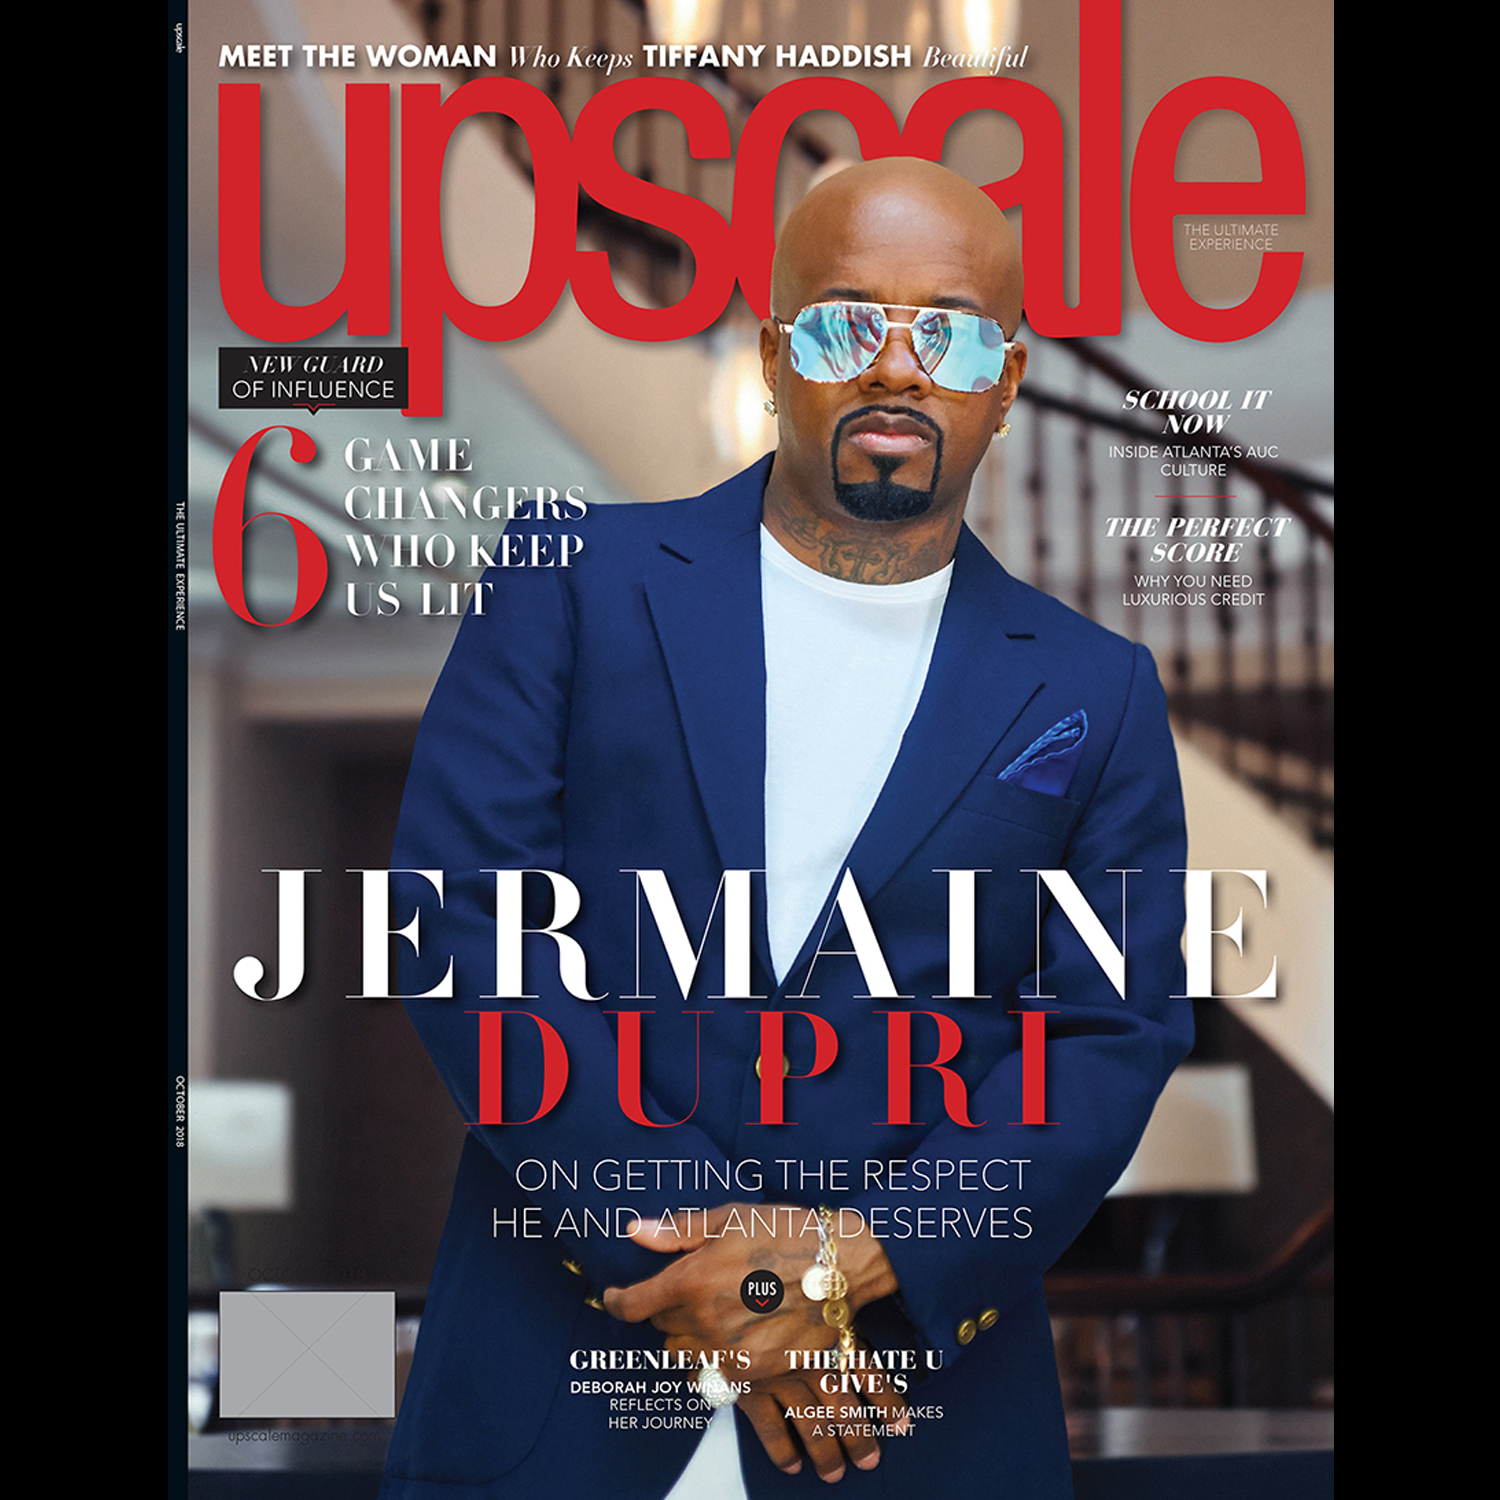 Jermaine Dupri on the Cover of Upscale Magazine